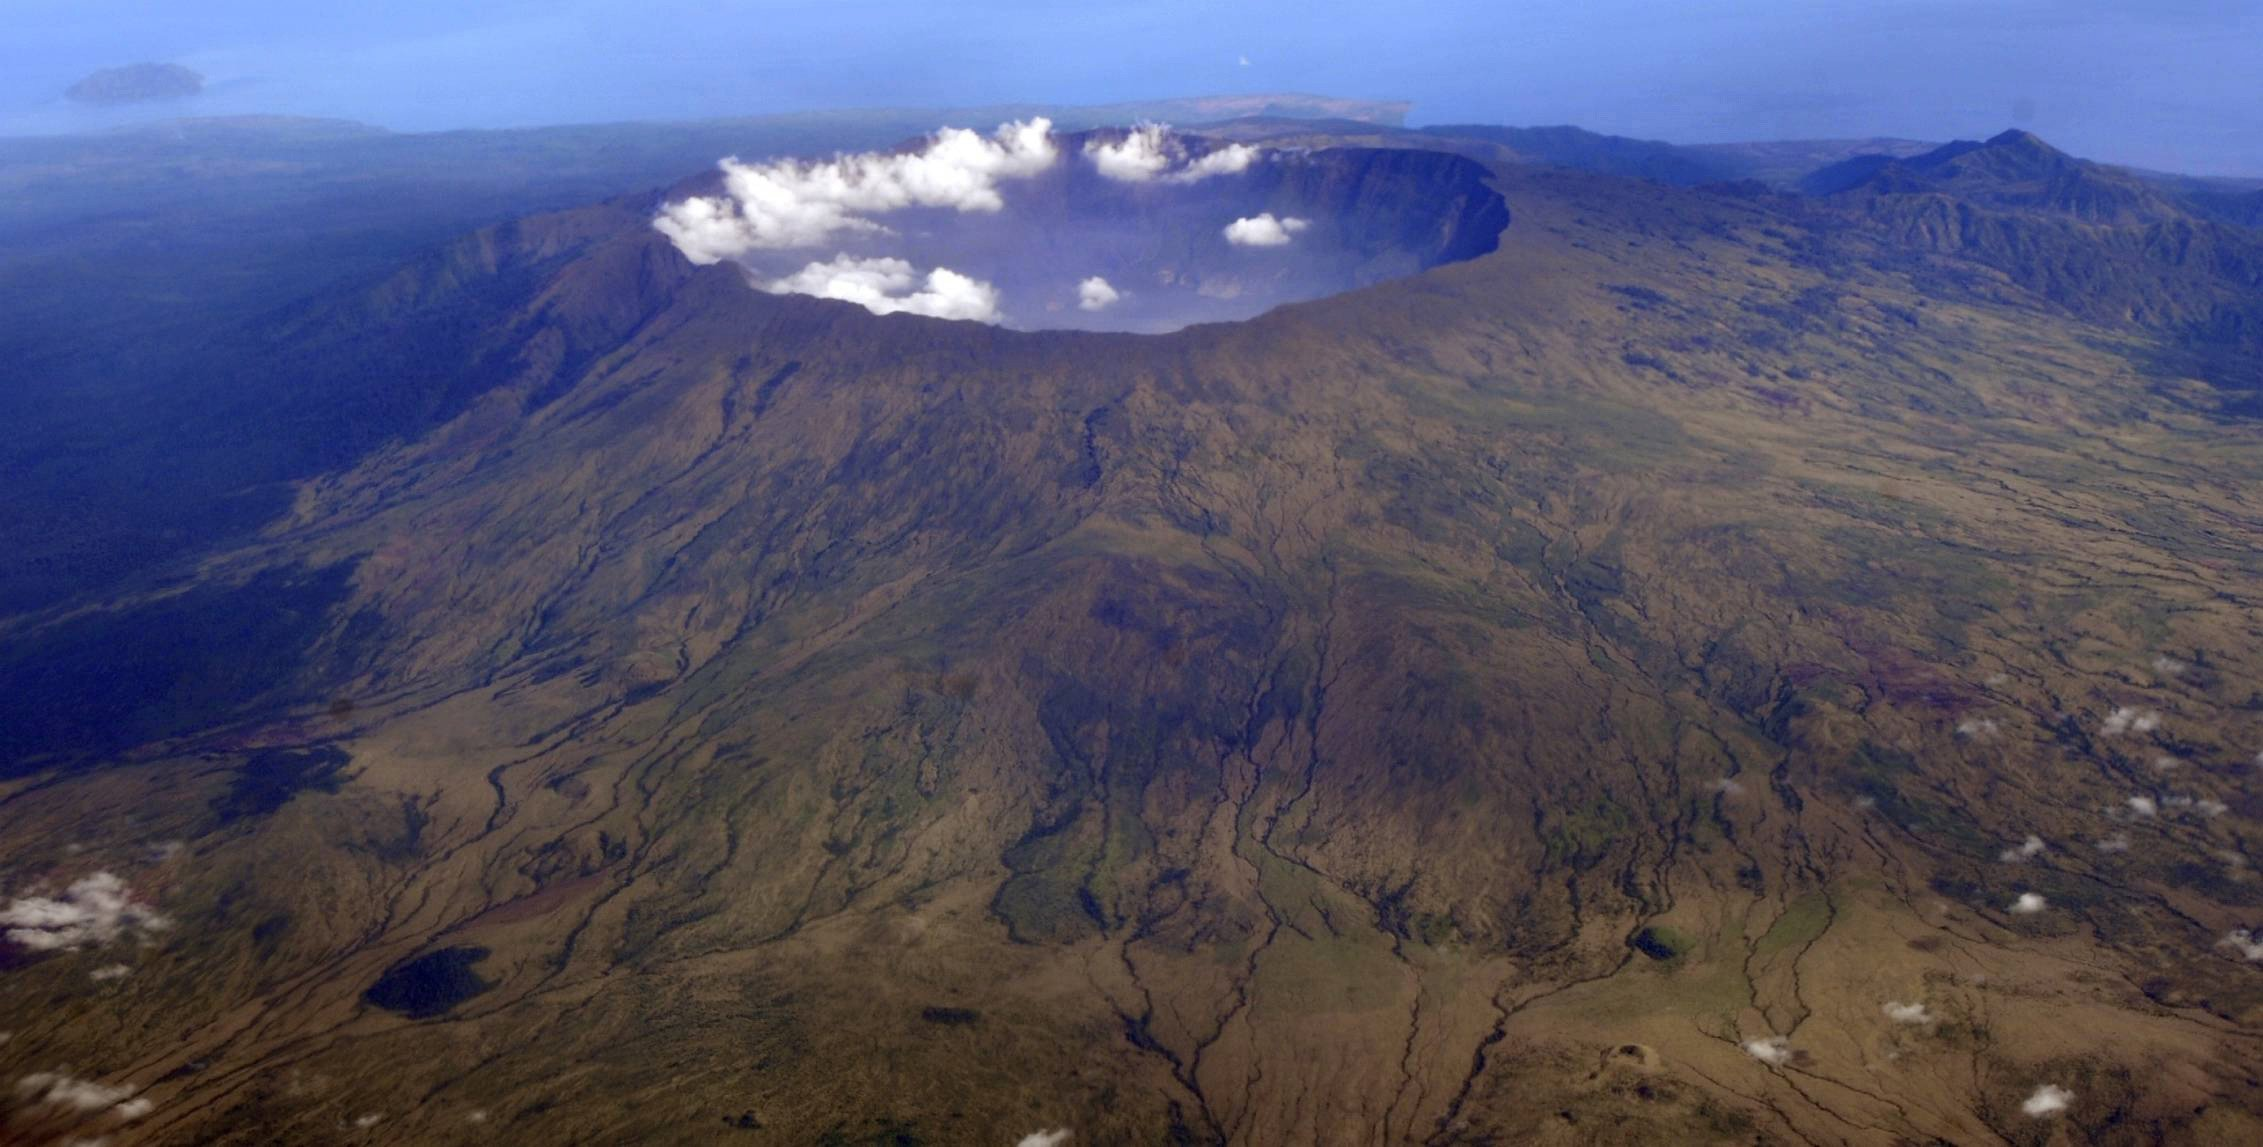 THE BIRTH OF FRANKENSTEIN FROM THE BELLY OF A VOLCANO